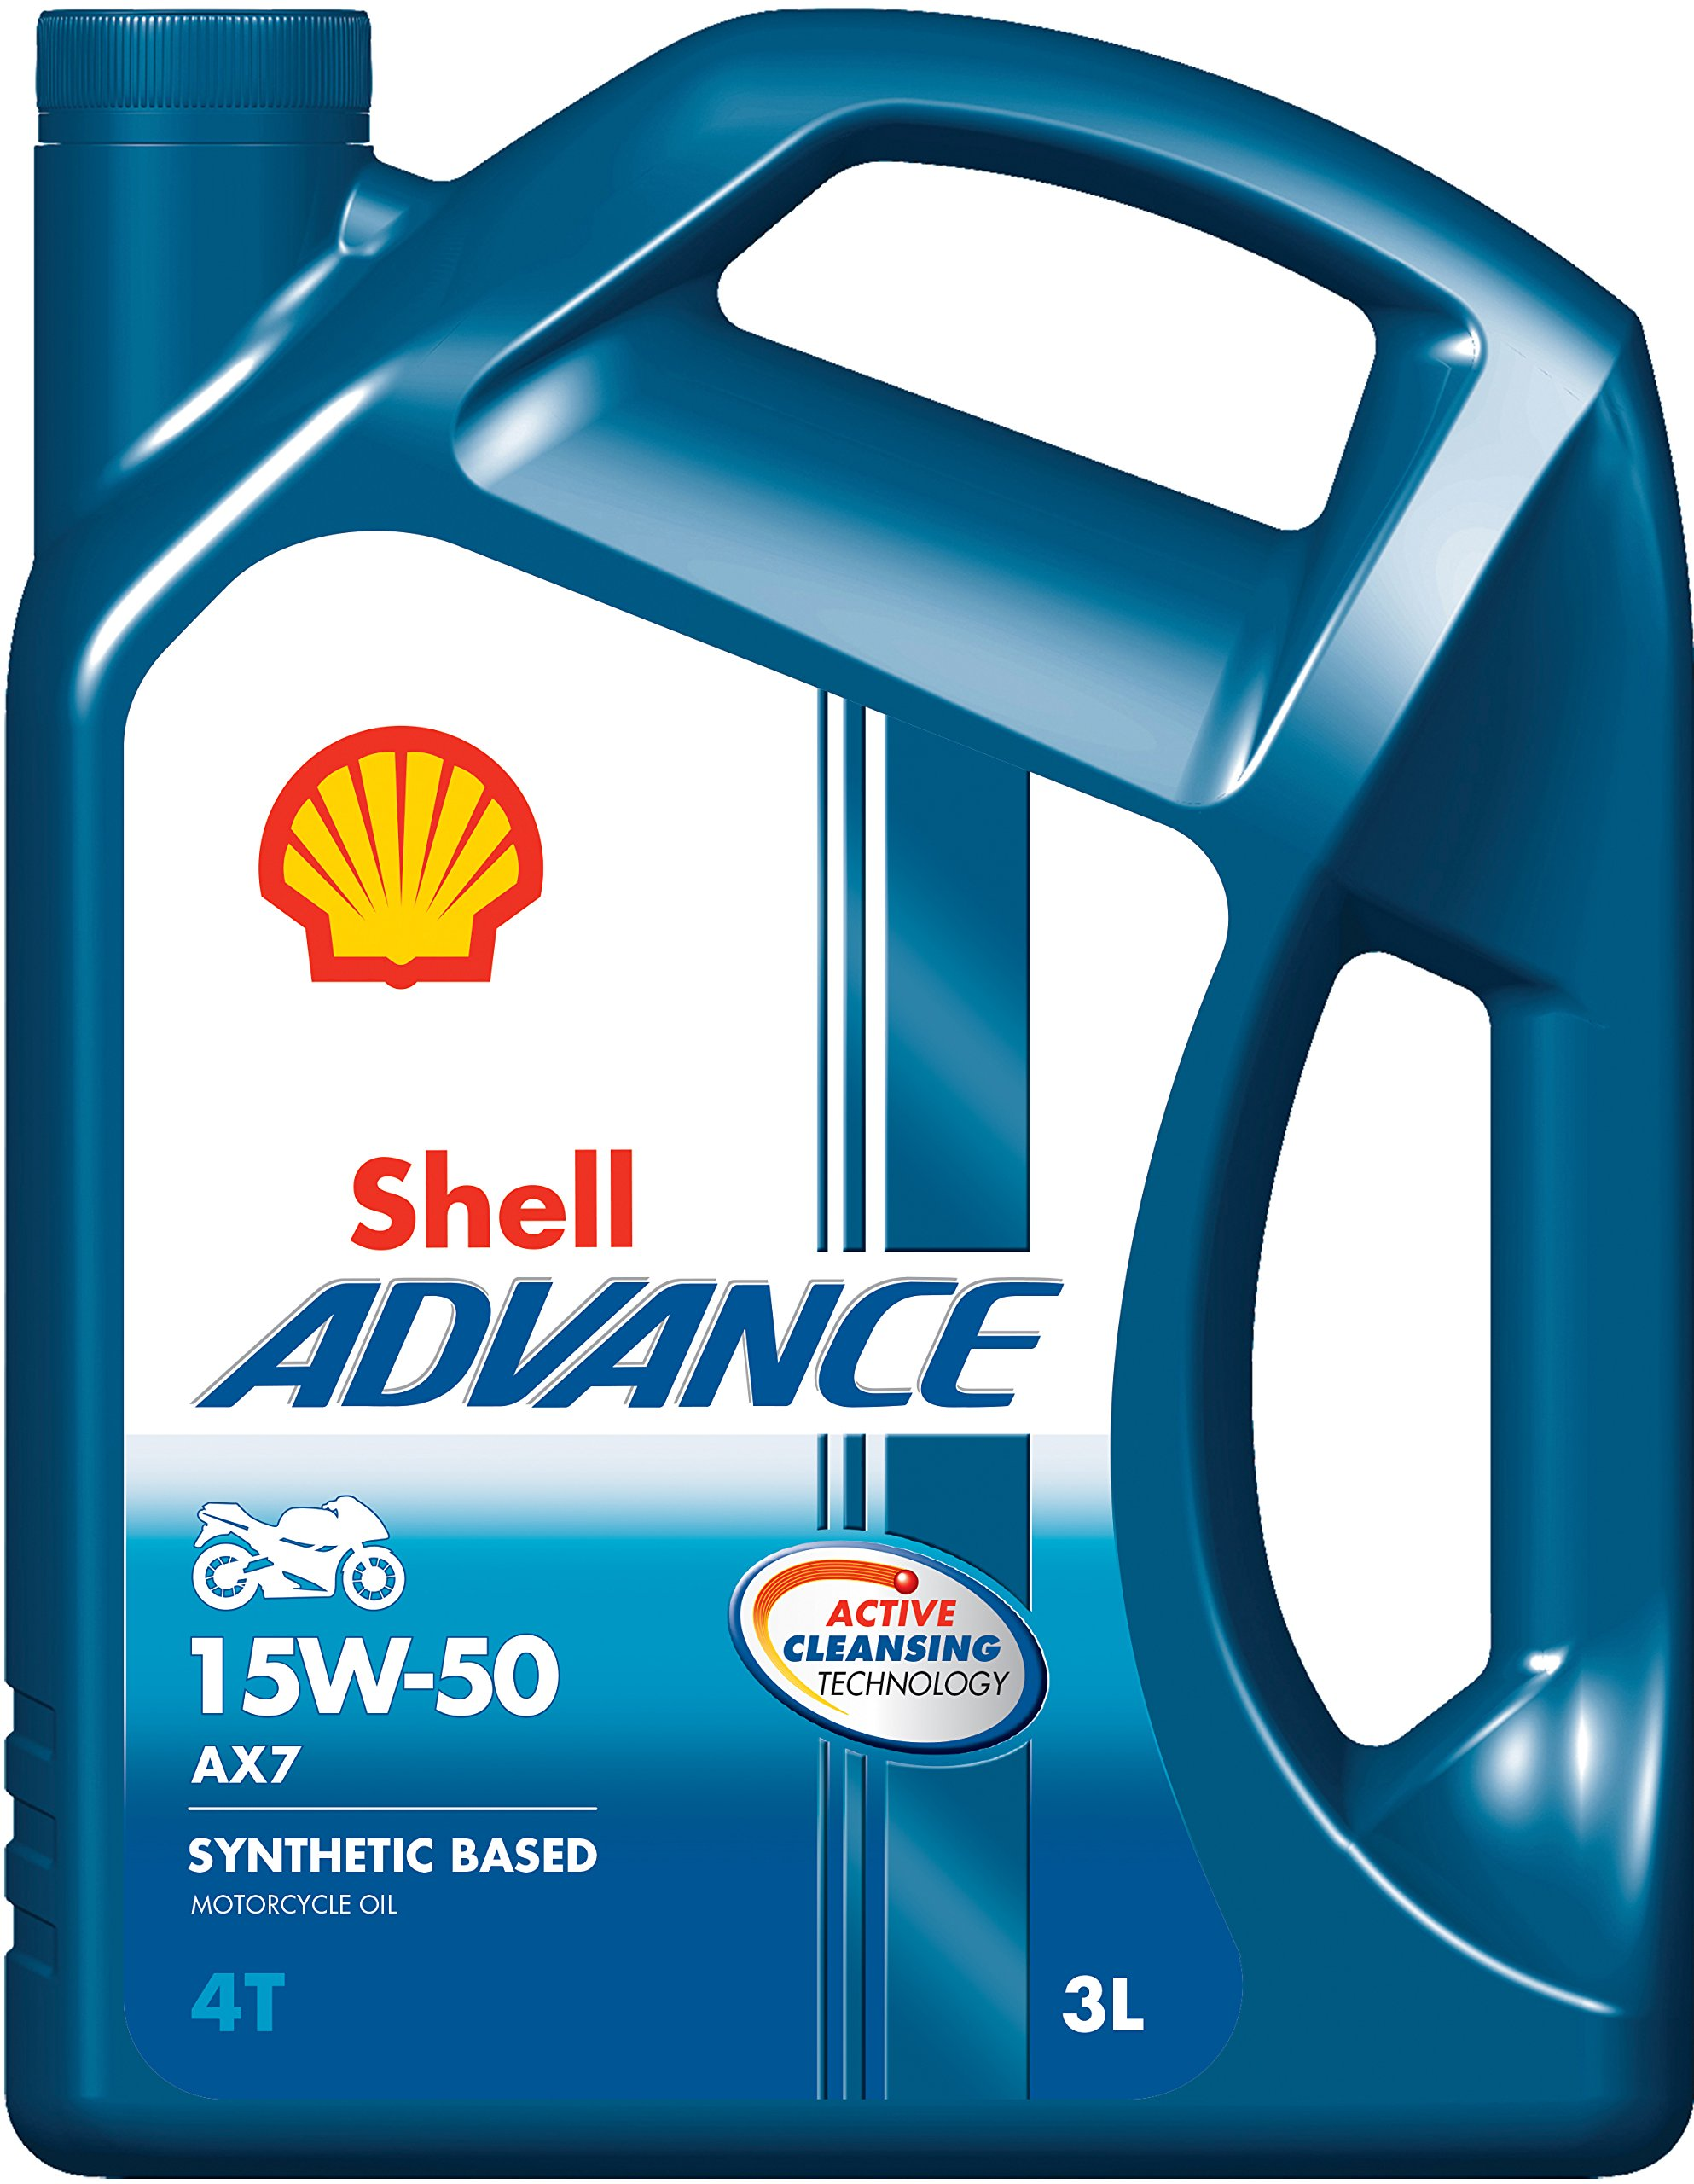 Shell Advance AX7 15W-50 API SM Semi Synthetic Engine Oil (3 L) product image